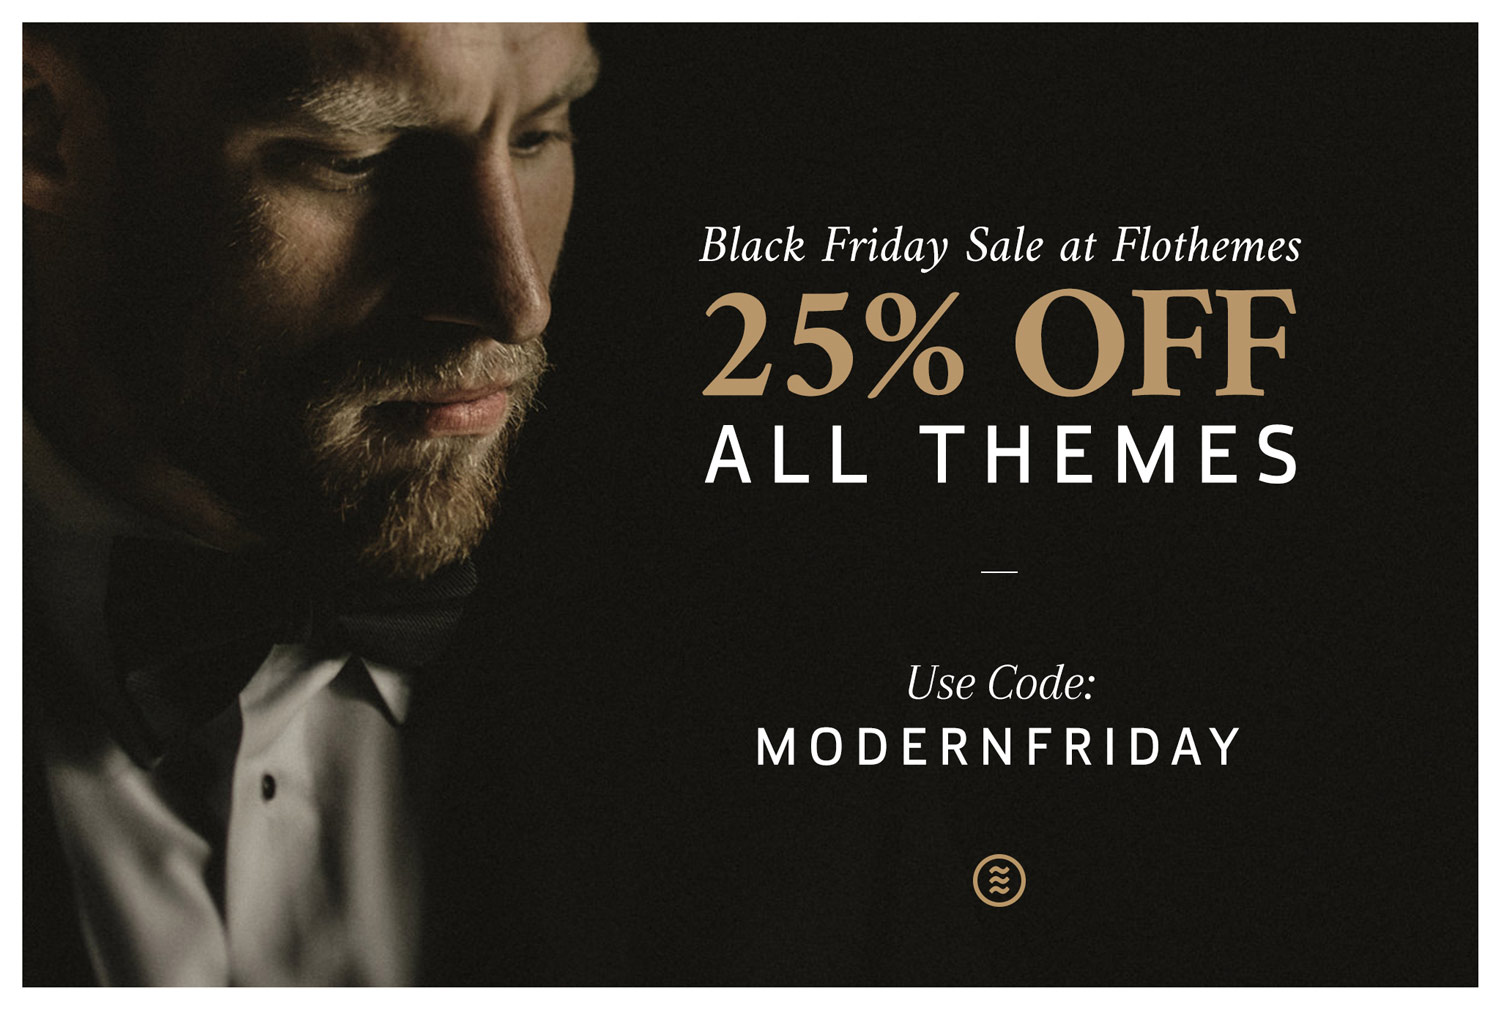 Flothemes Black Friday Sale